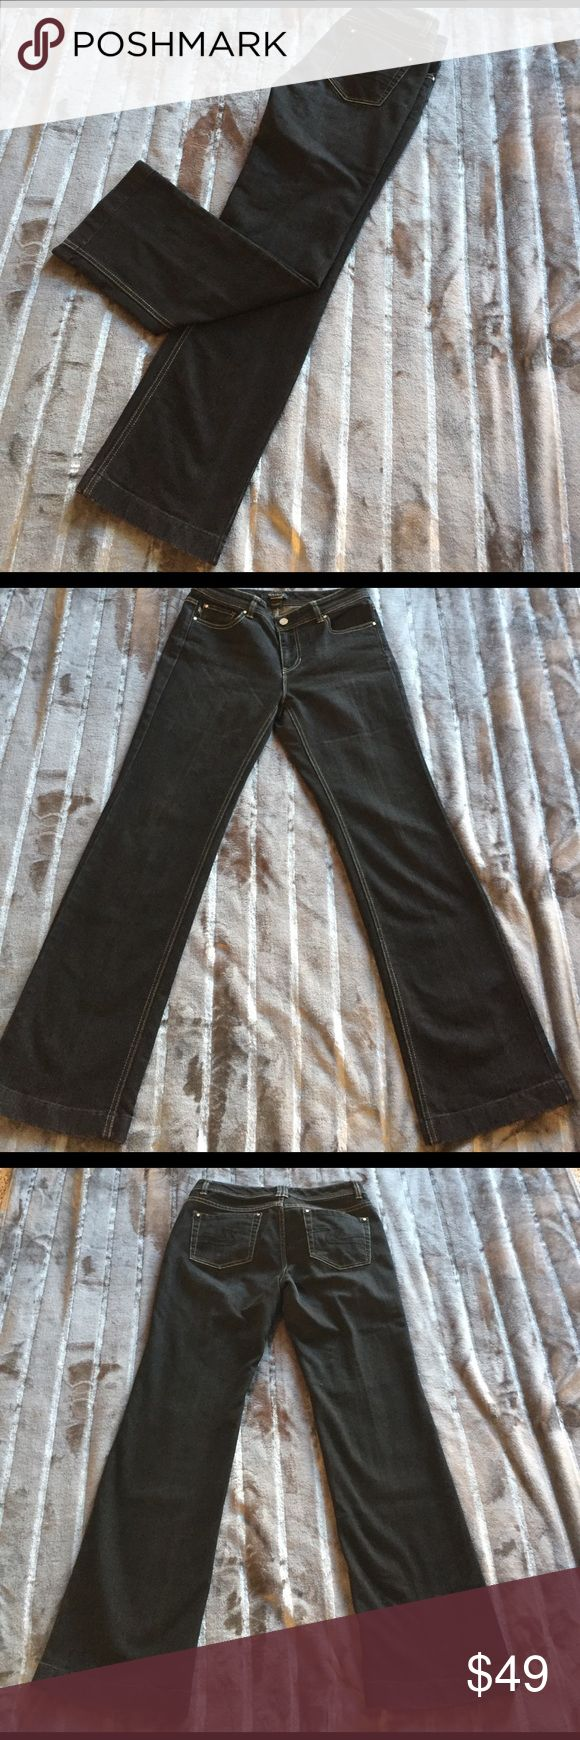 WHBM size 6S black bootcut jeans Black size 6S bootcut White House Black Market. Five pocket with single button and zipper closure. Some whiskering. In great used condition. Inseam 30 Rise 8 3/4.       (193) White House Black Market Jeans Boot Cut